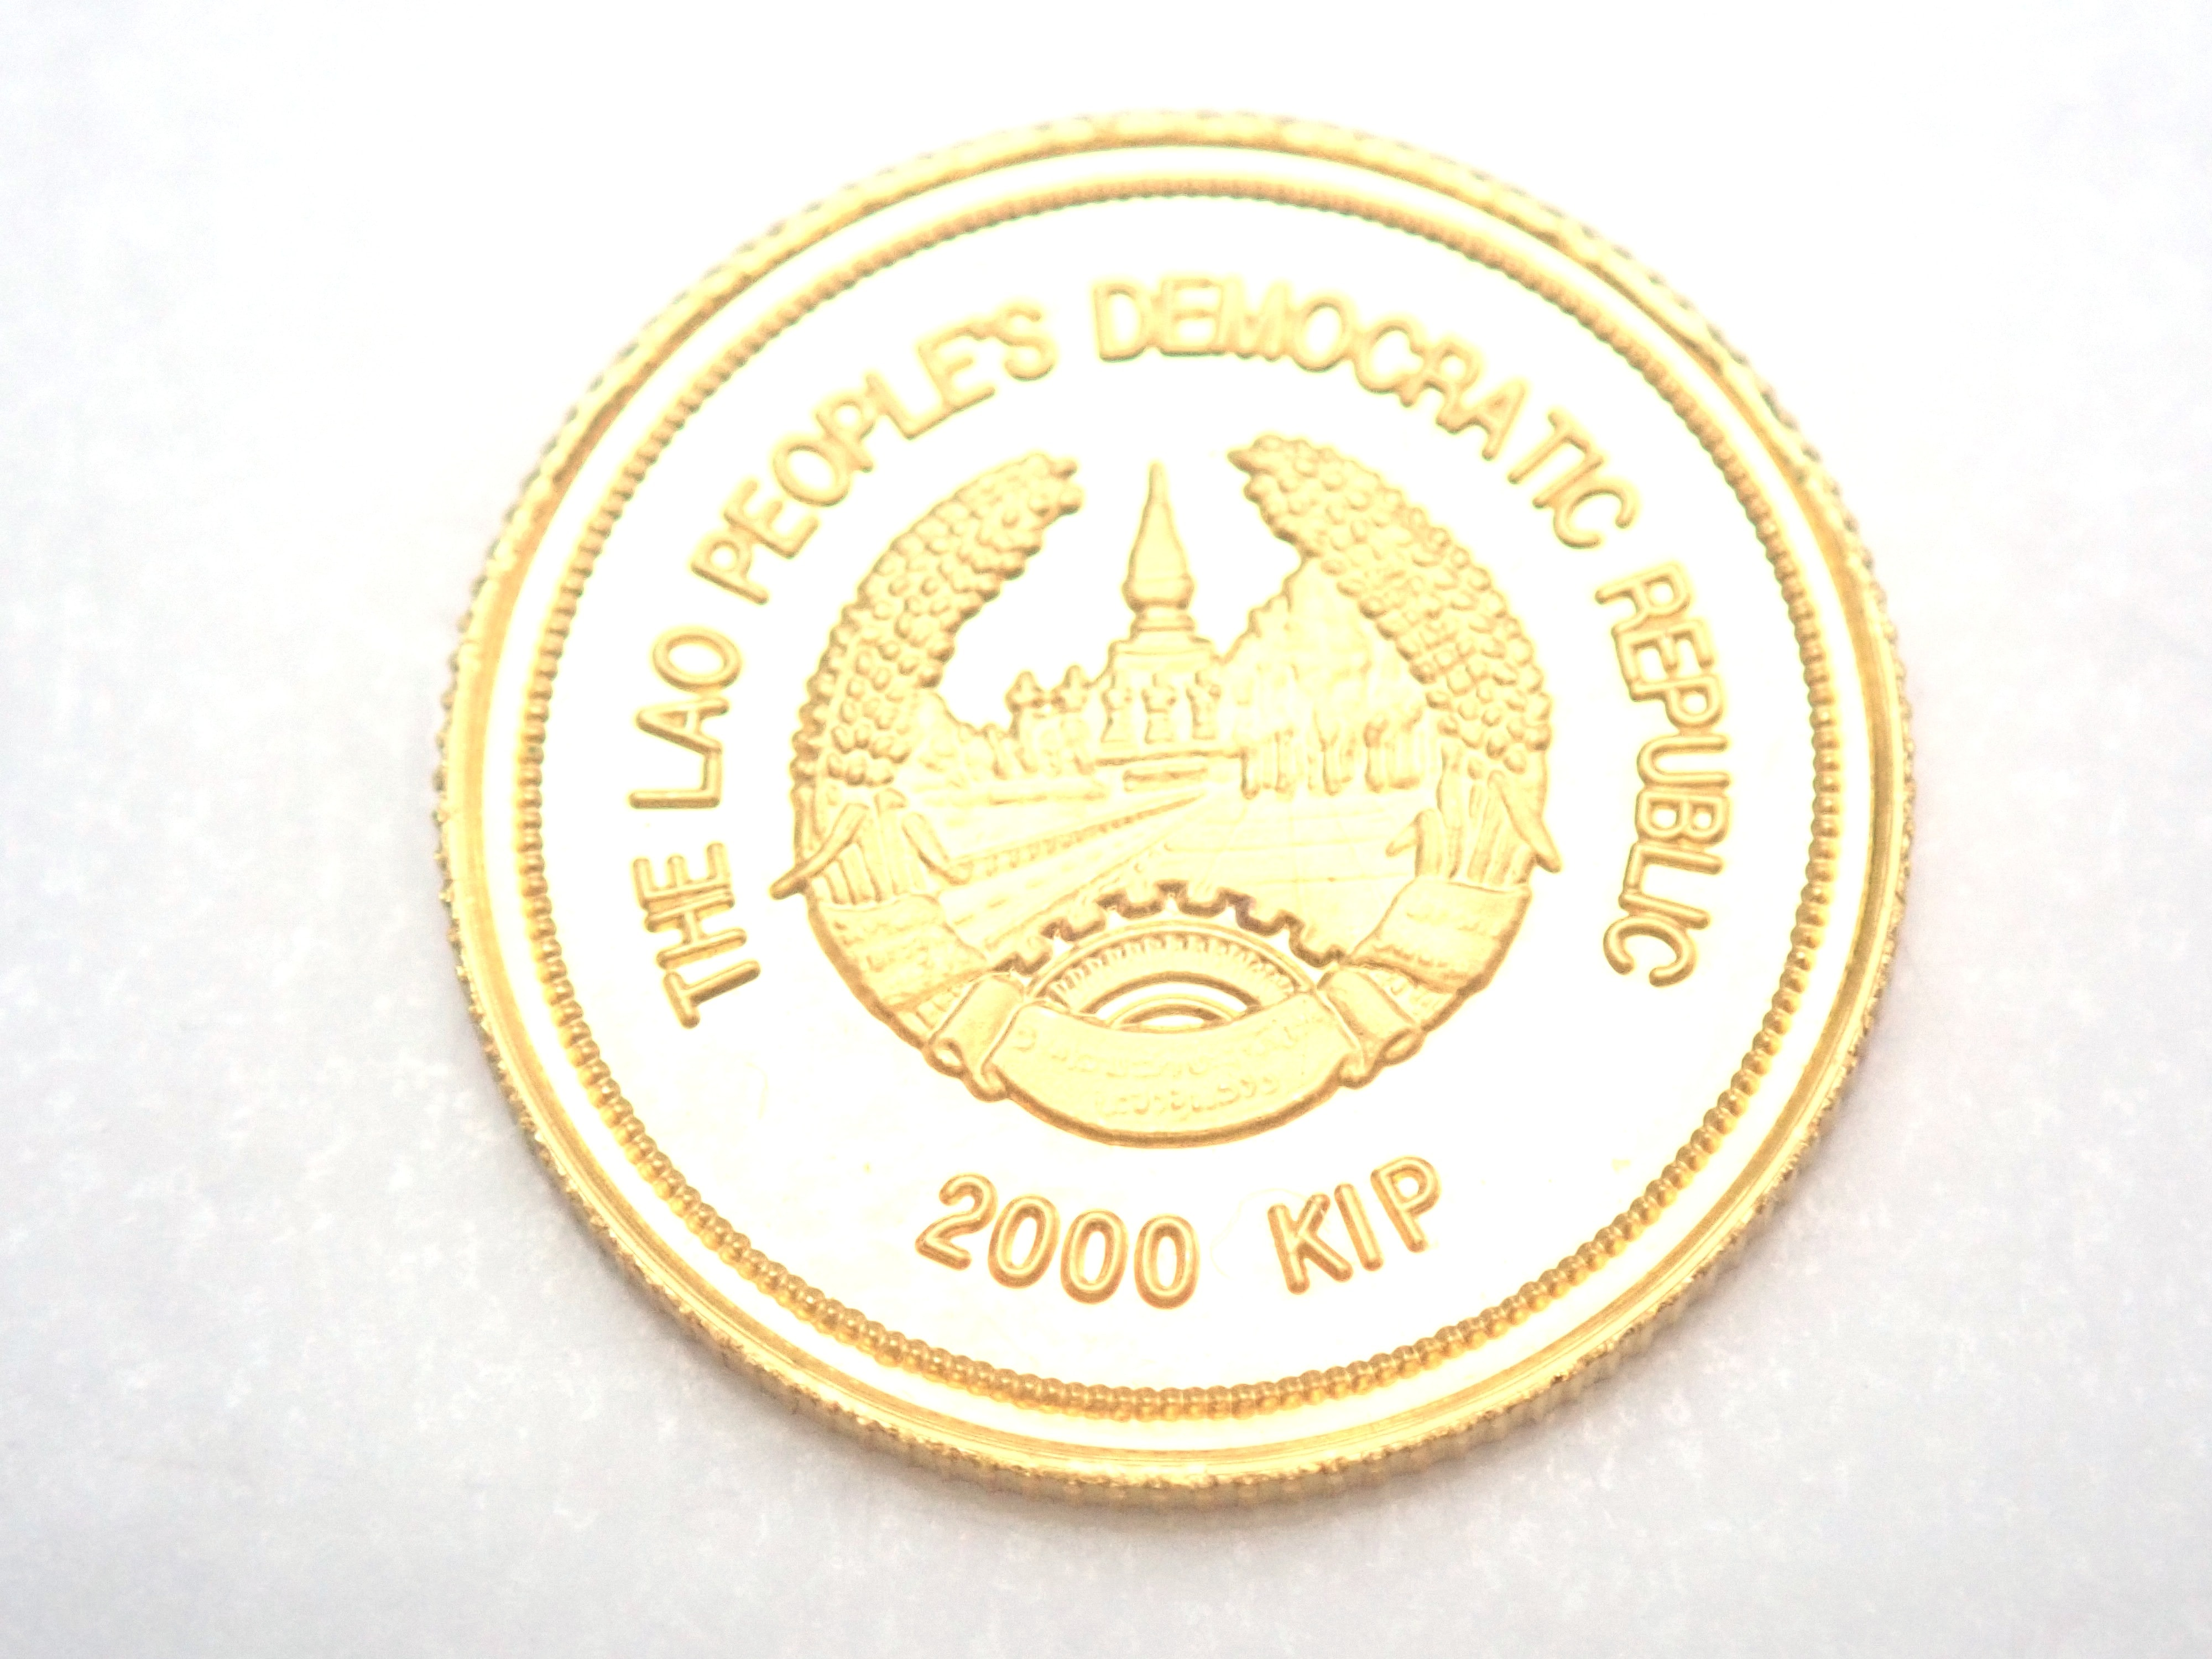 AZZ00793 1 - Laos 2000 kip That Luang Buddhism Shrine Architecture Solid 24ct Gold Coin 1998